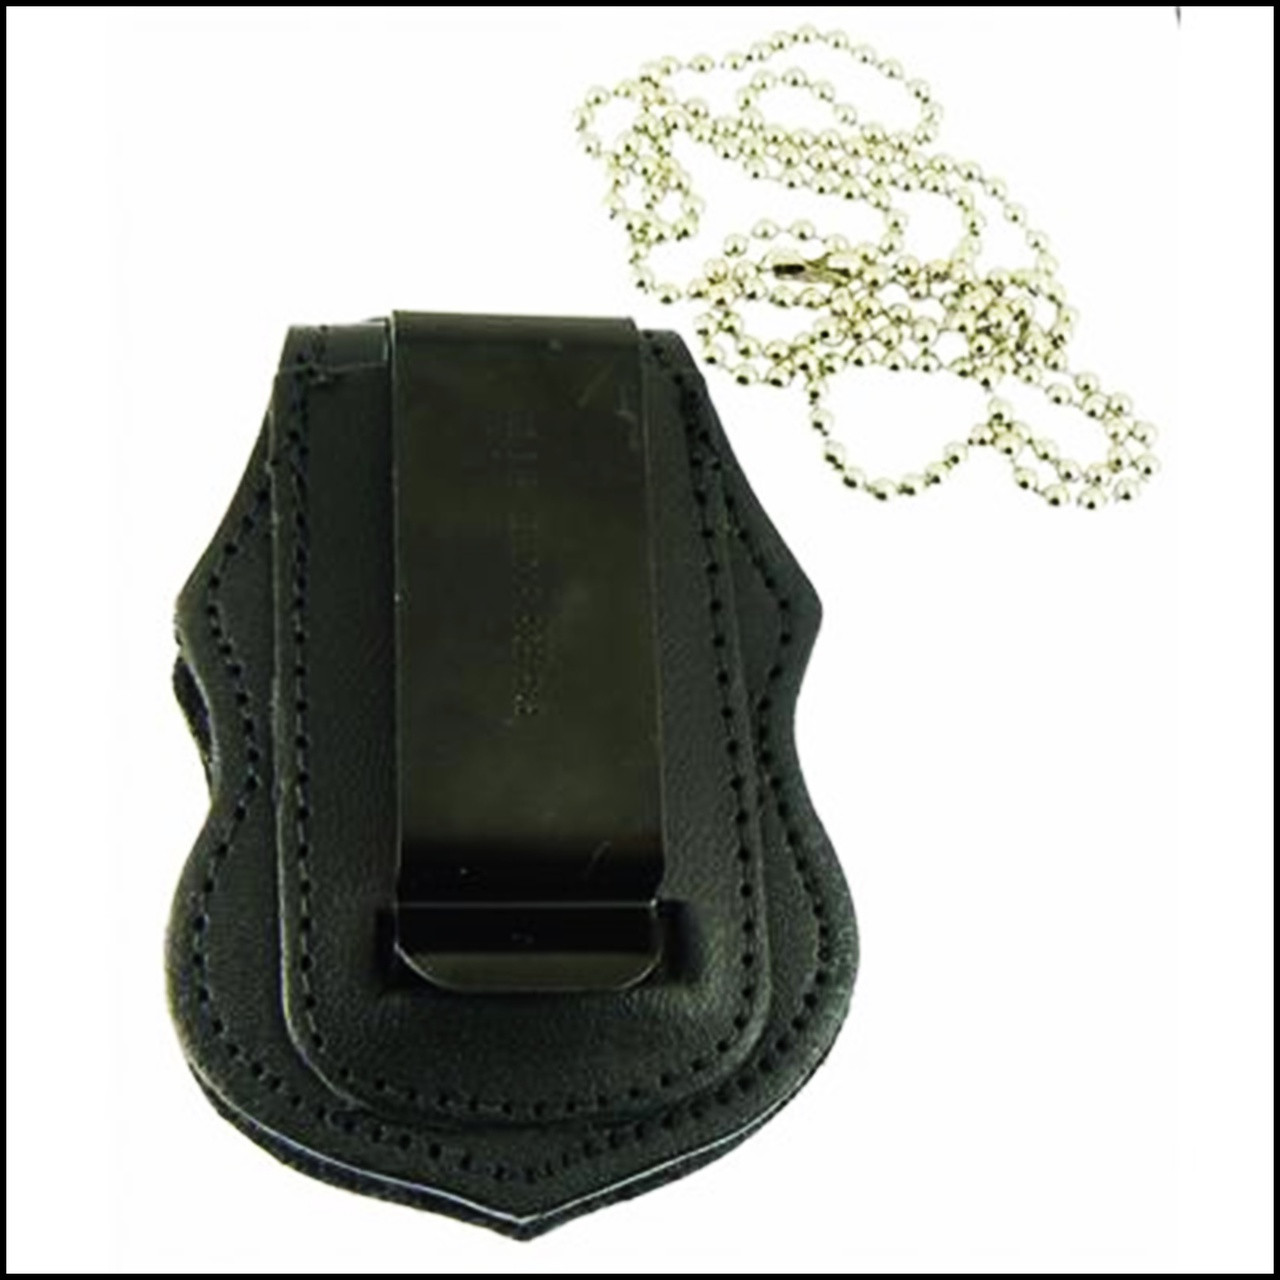 US Border Patrol Badge Shaped Badge Holder Clip and Chain